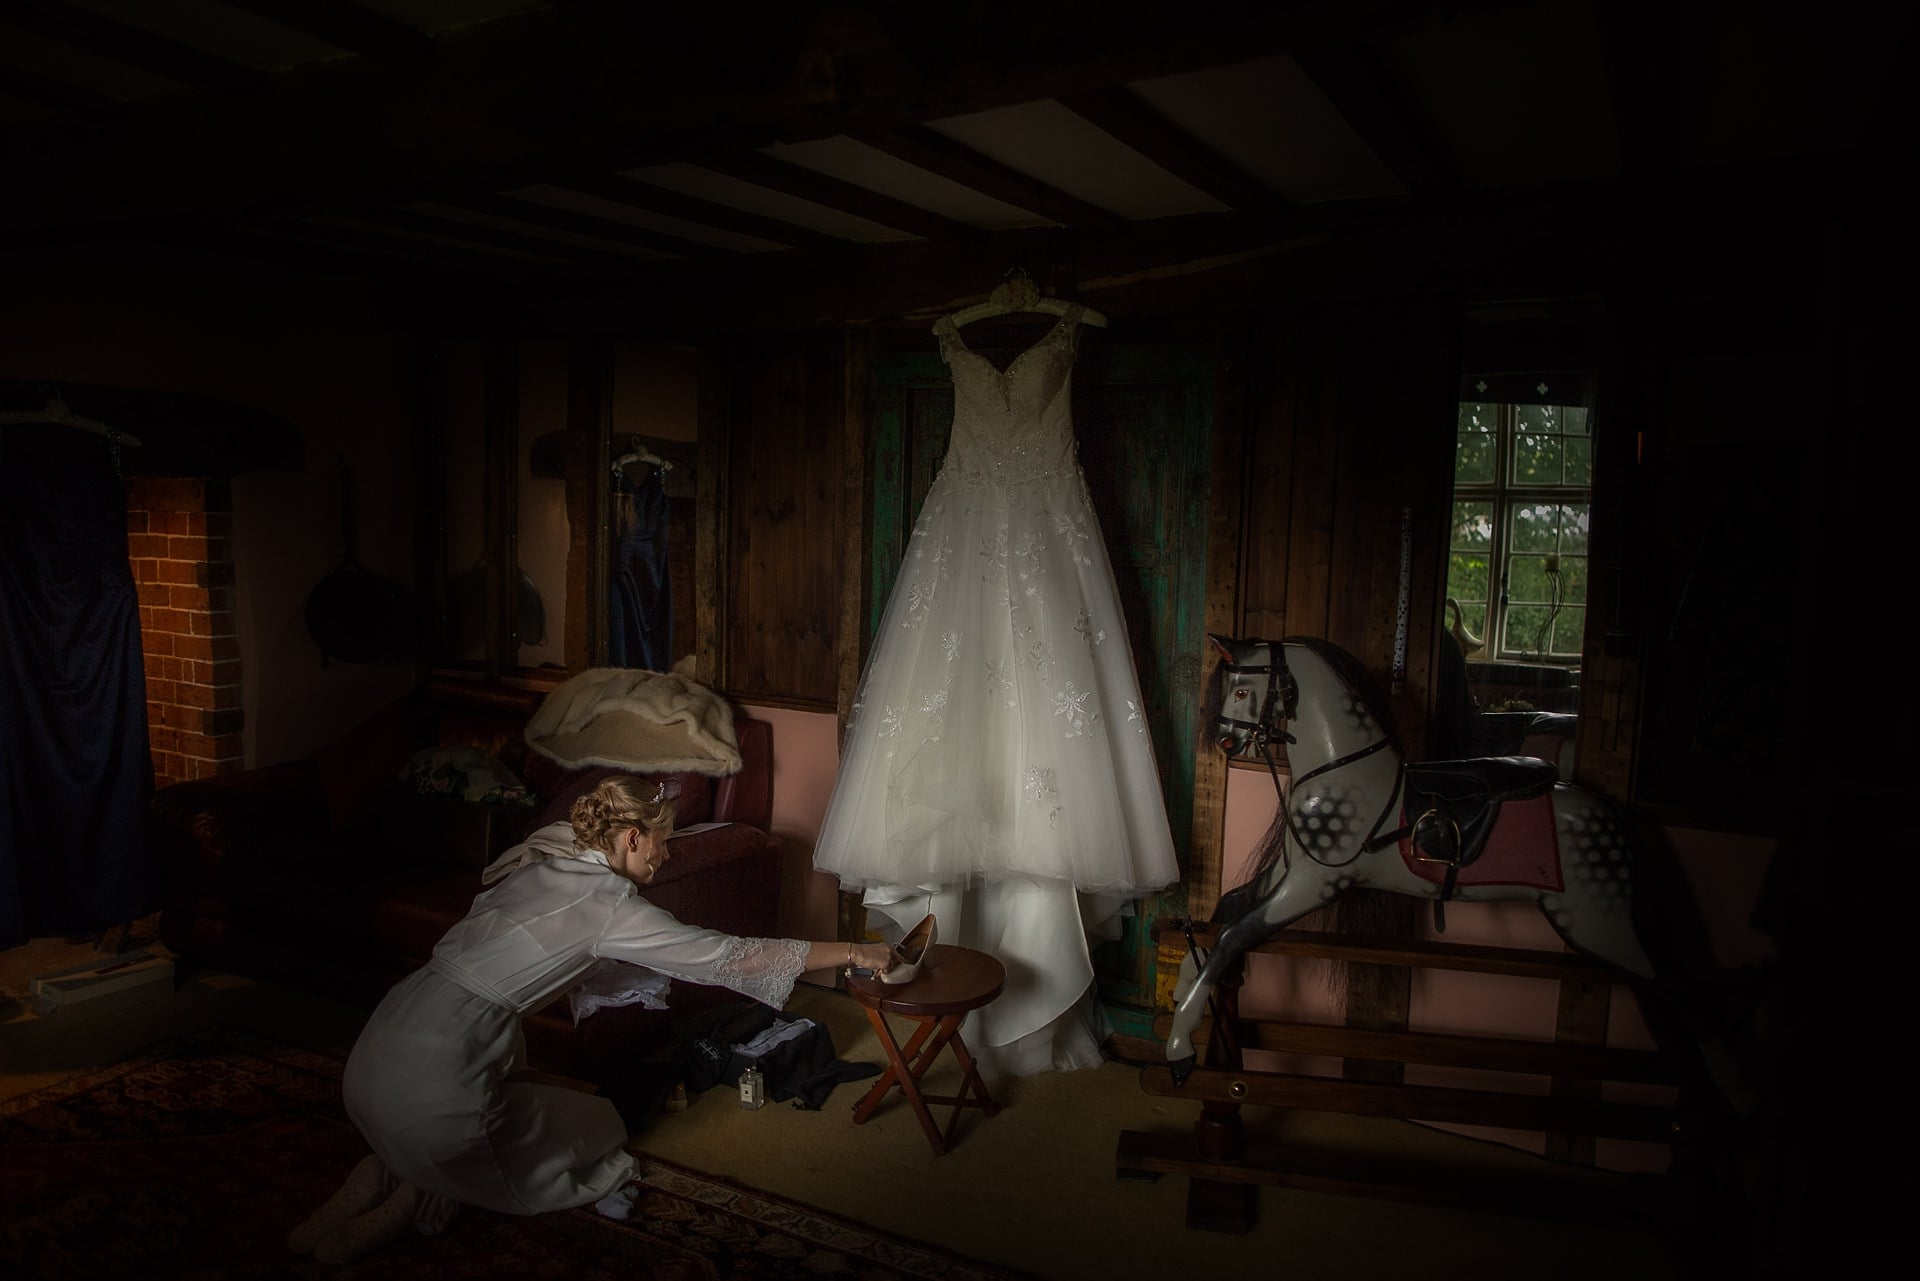 Sarah places her shoes by her dress, while Shropshire Documentary wedding photographer pbartworks captures the scene